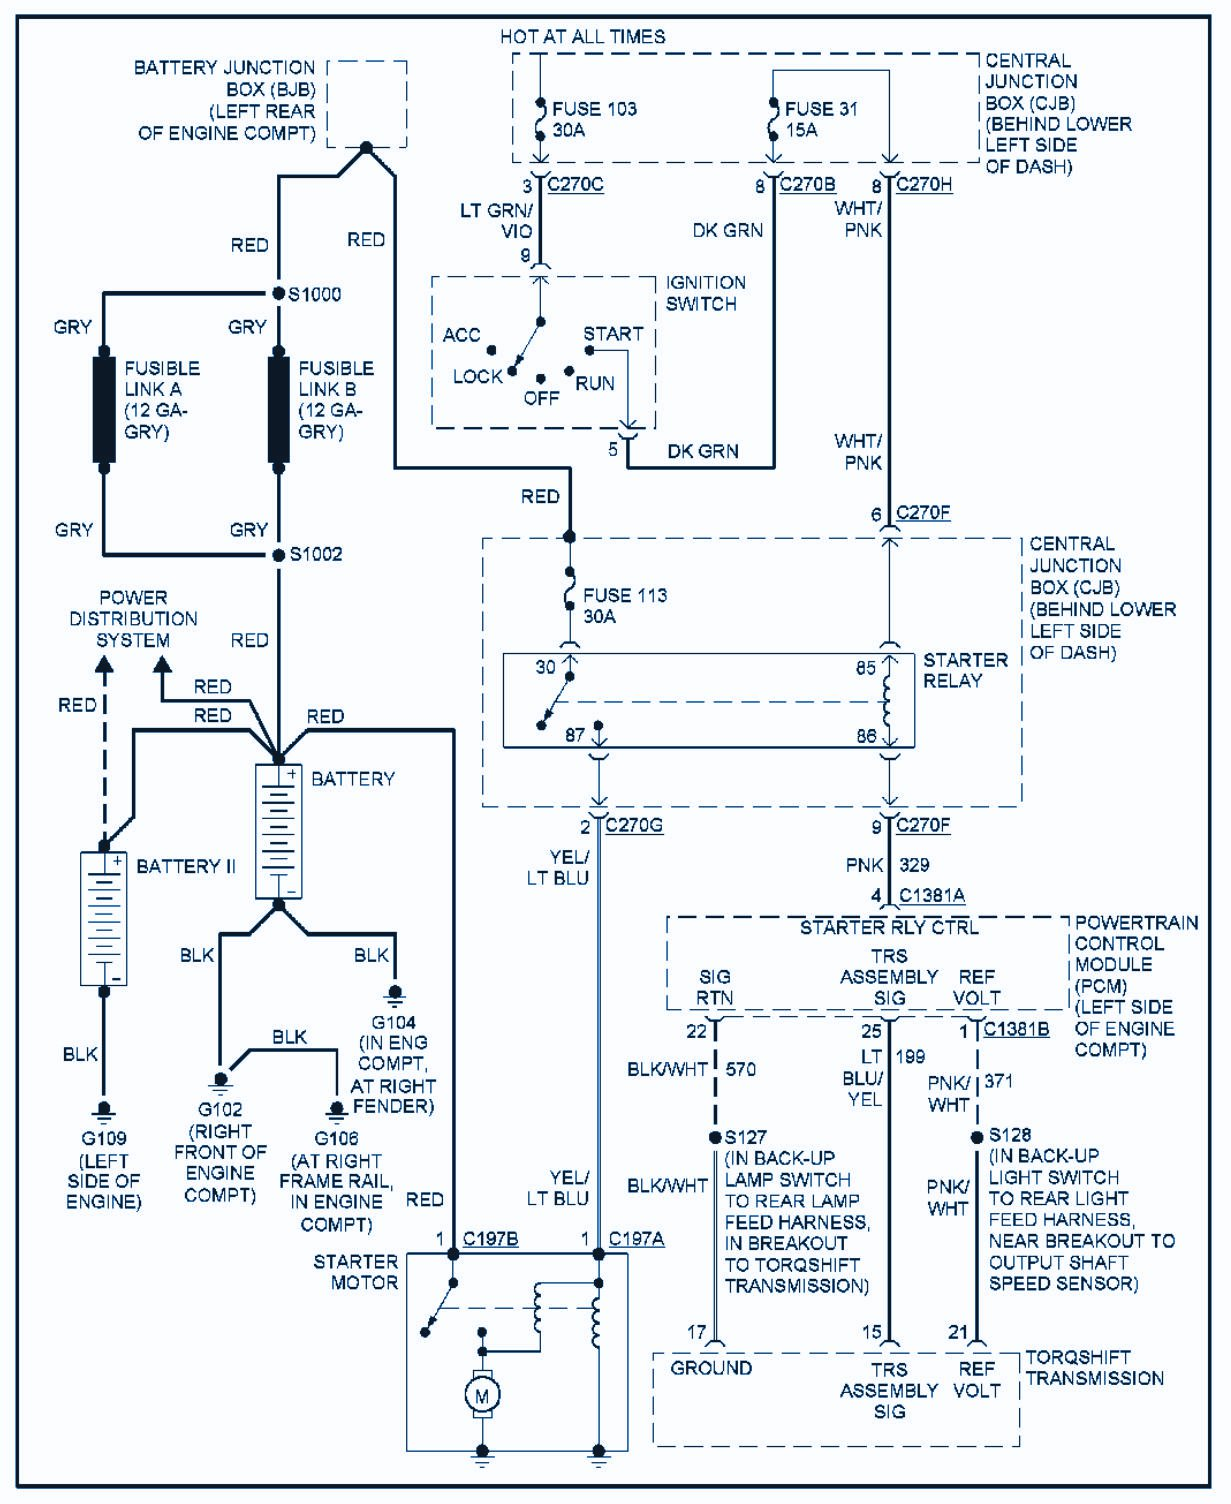 2000 ford e 150 need starter wiring diagram wiring diagrams - wiring diagram  schema gown-track-a - gown-track-a.atmosphereconcept.it  atmosphereconcept.it